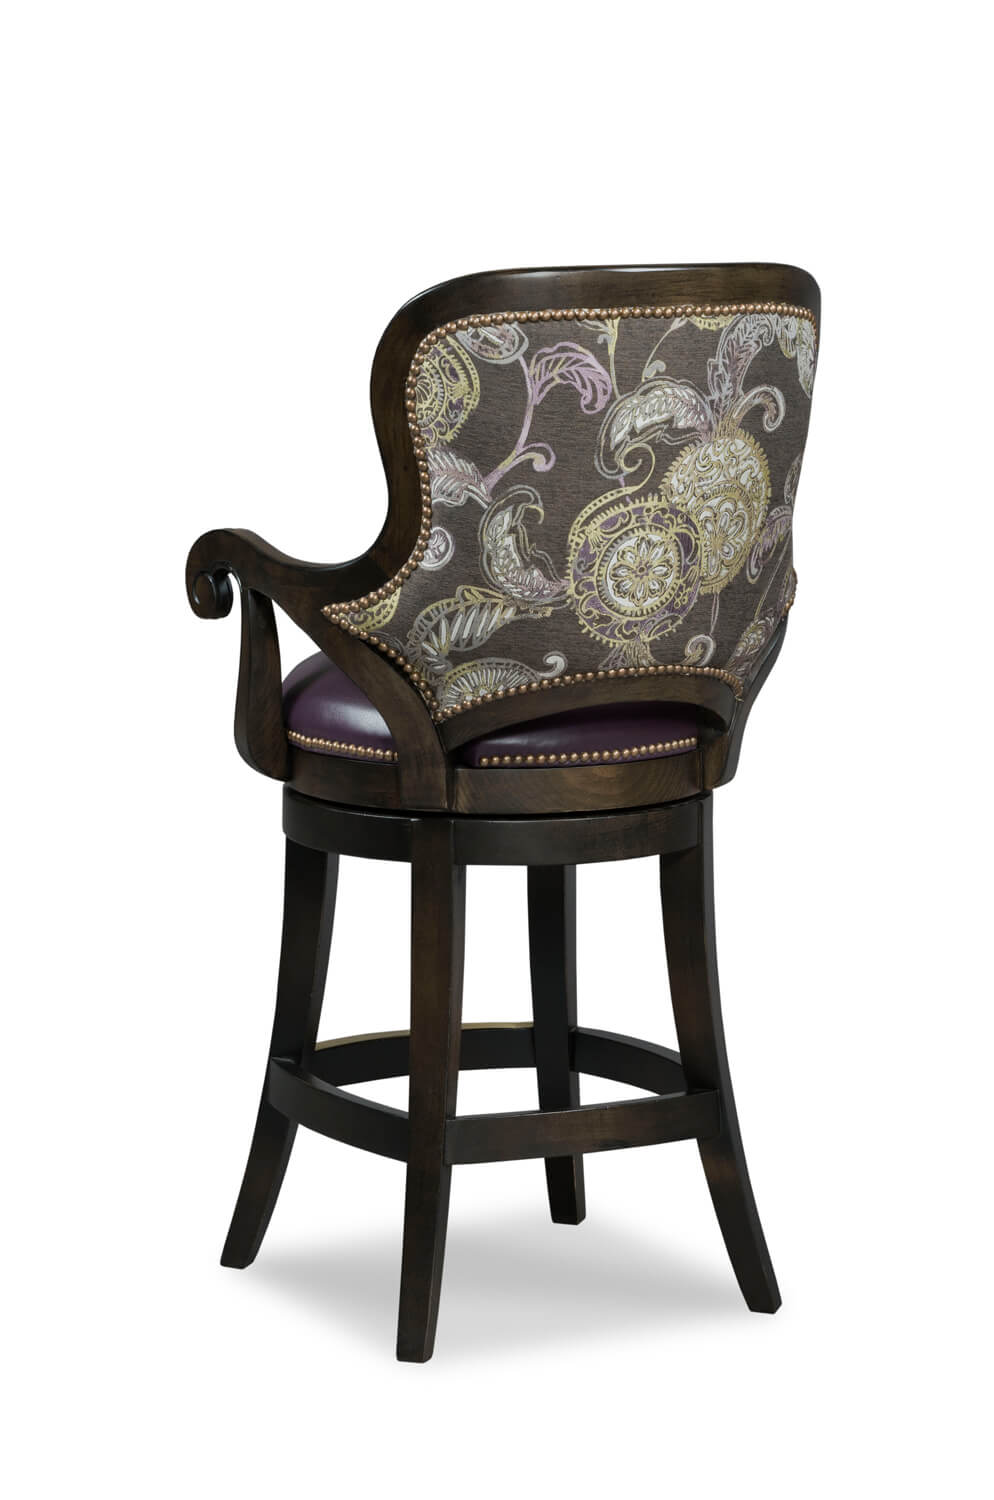 Fairfields melrose swivel wood counter stool with arms backside